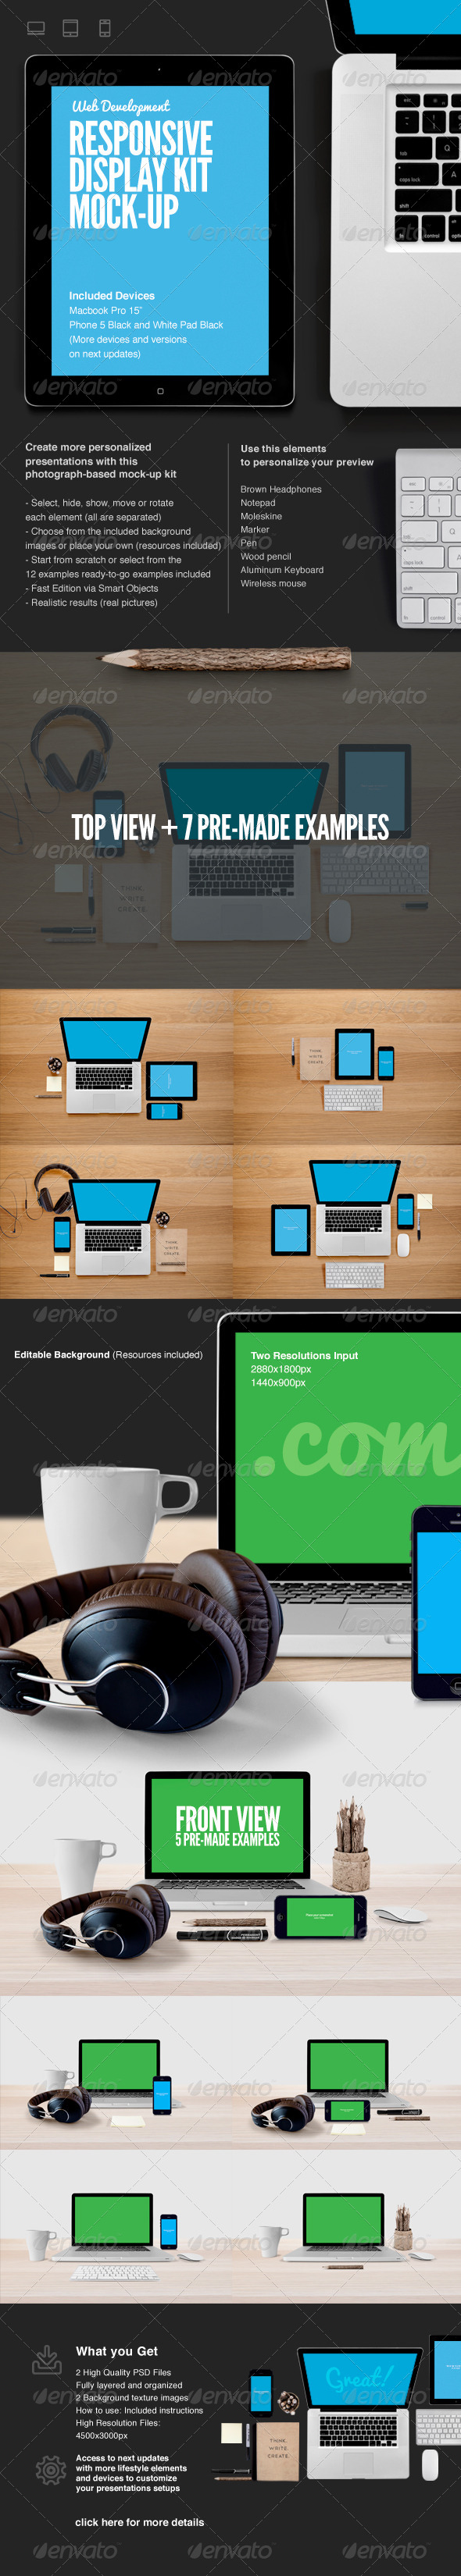 Responsive Web Display Kit Mock-Up - Displays Product Mock-Ups